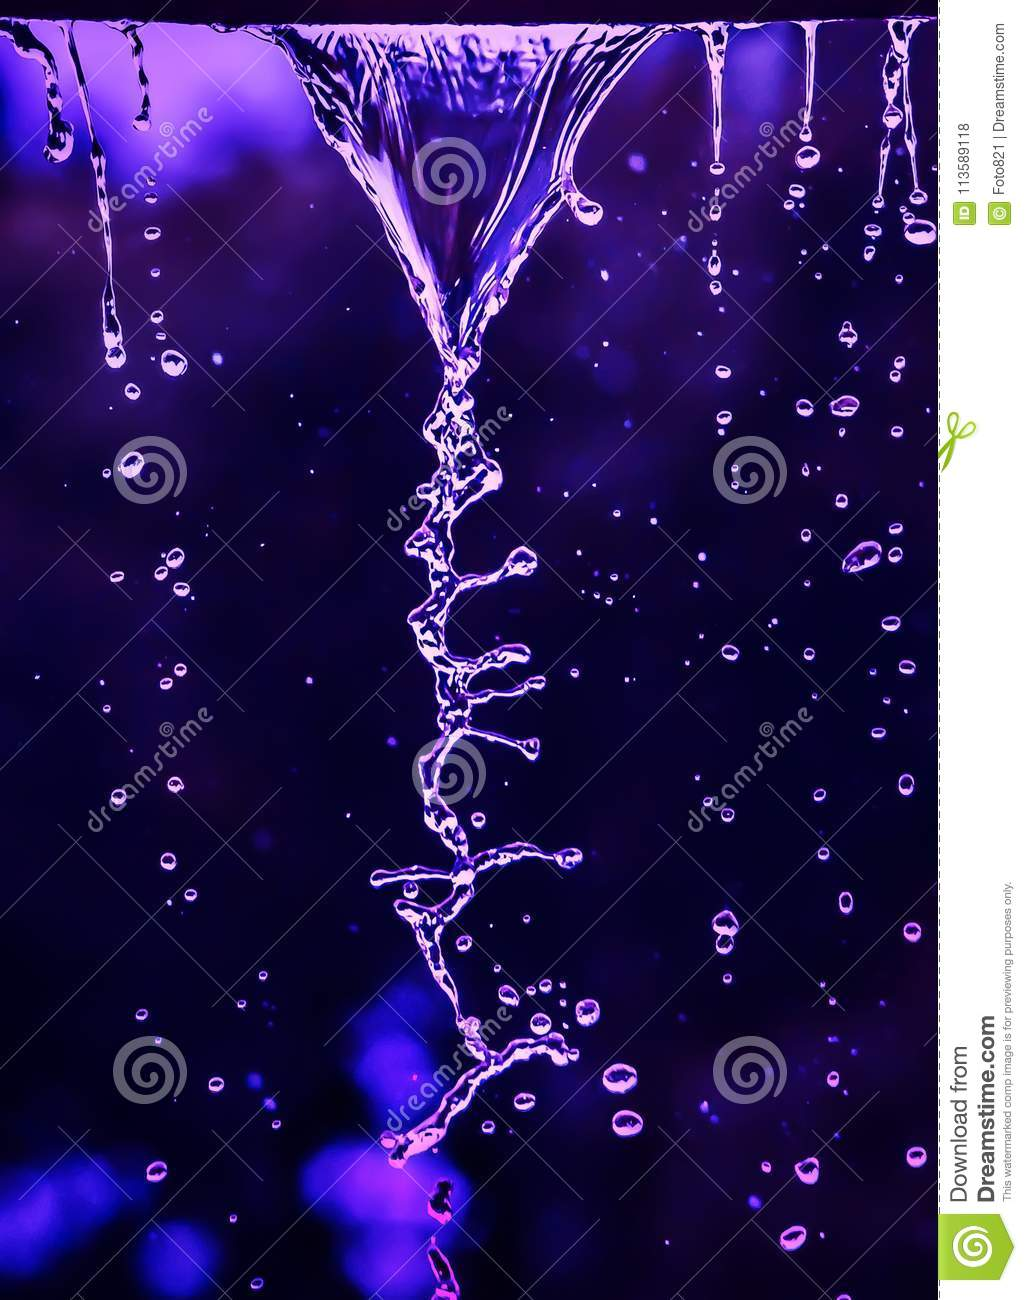 DNA of water